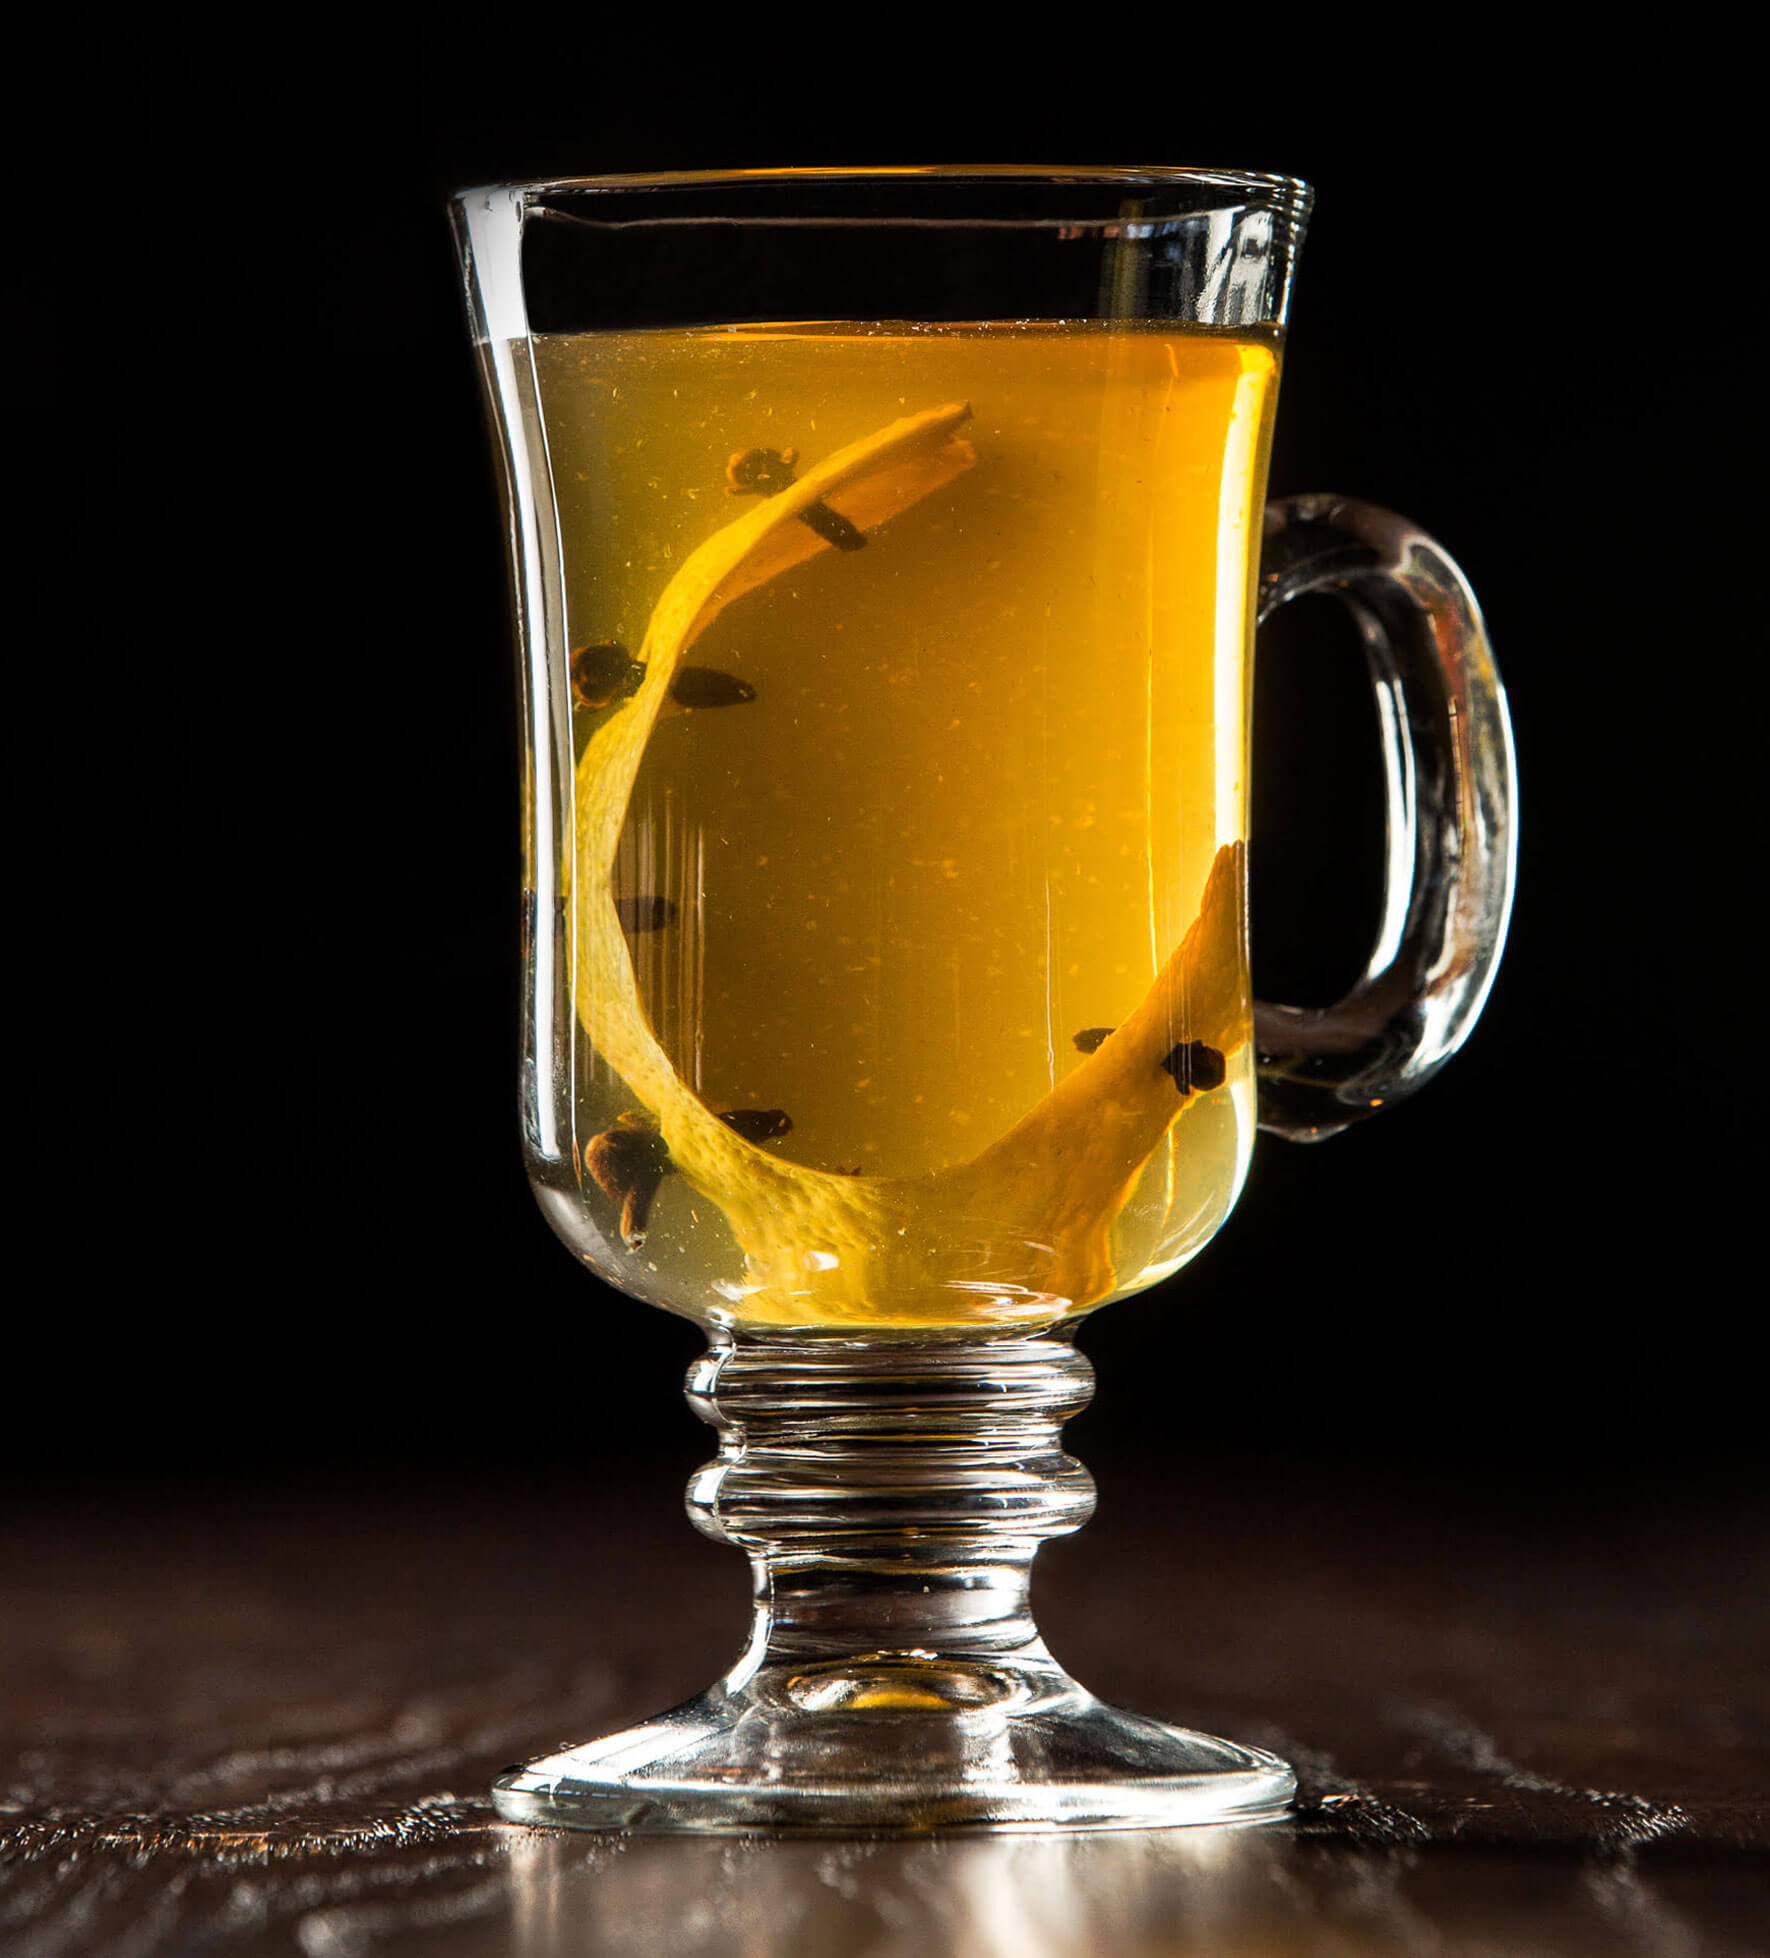 Castle Hot Toddy, cocktail with garnish, dark background